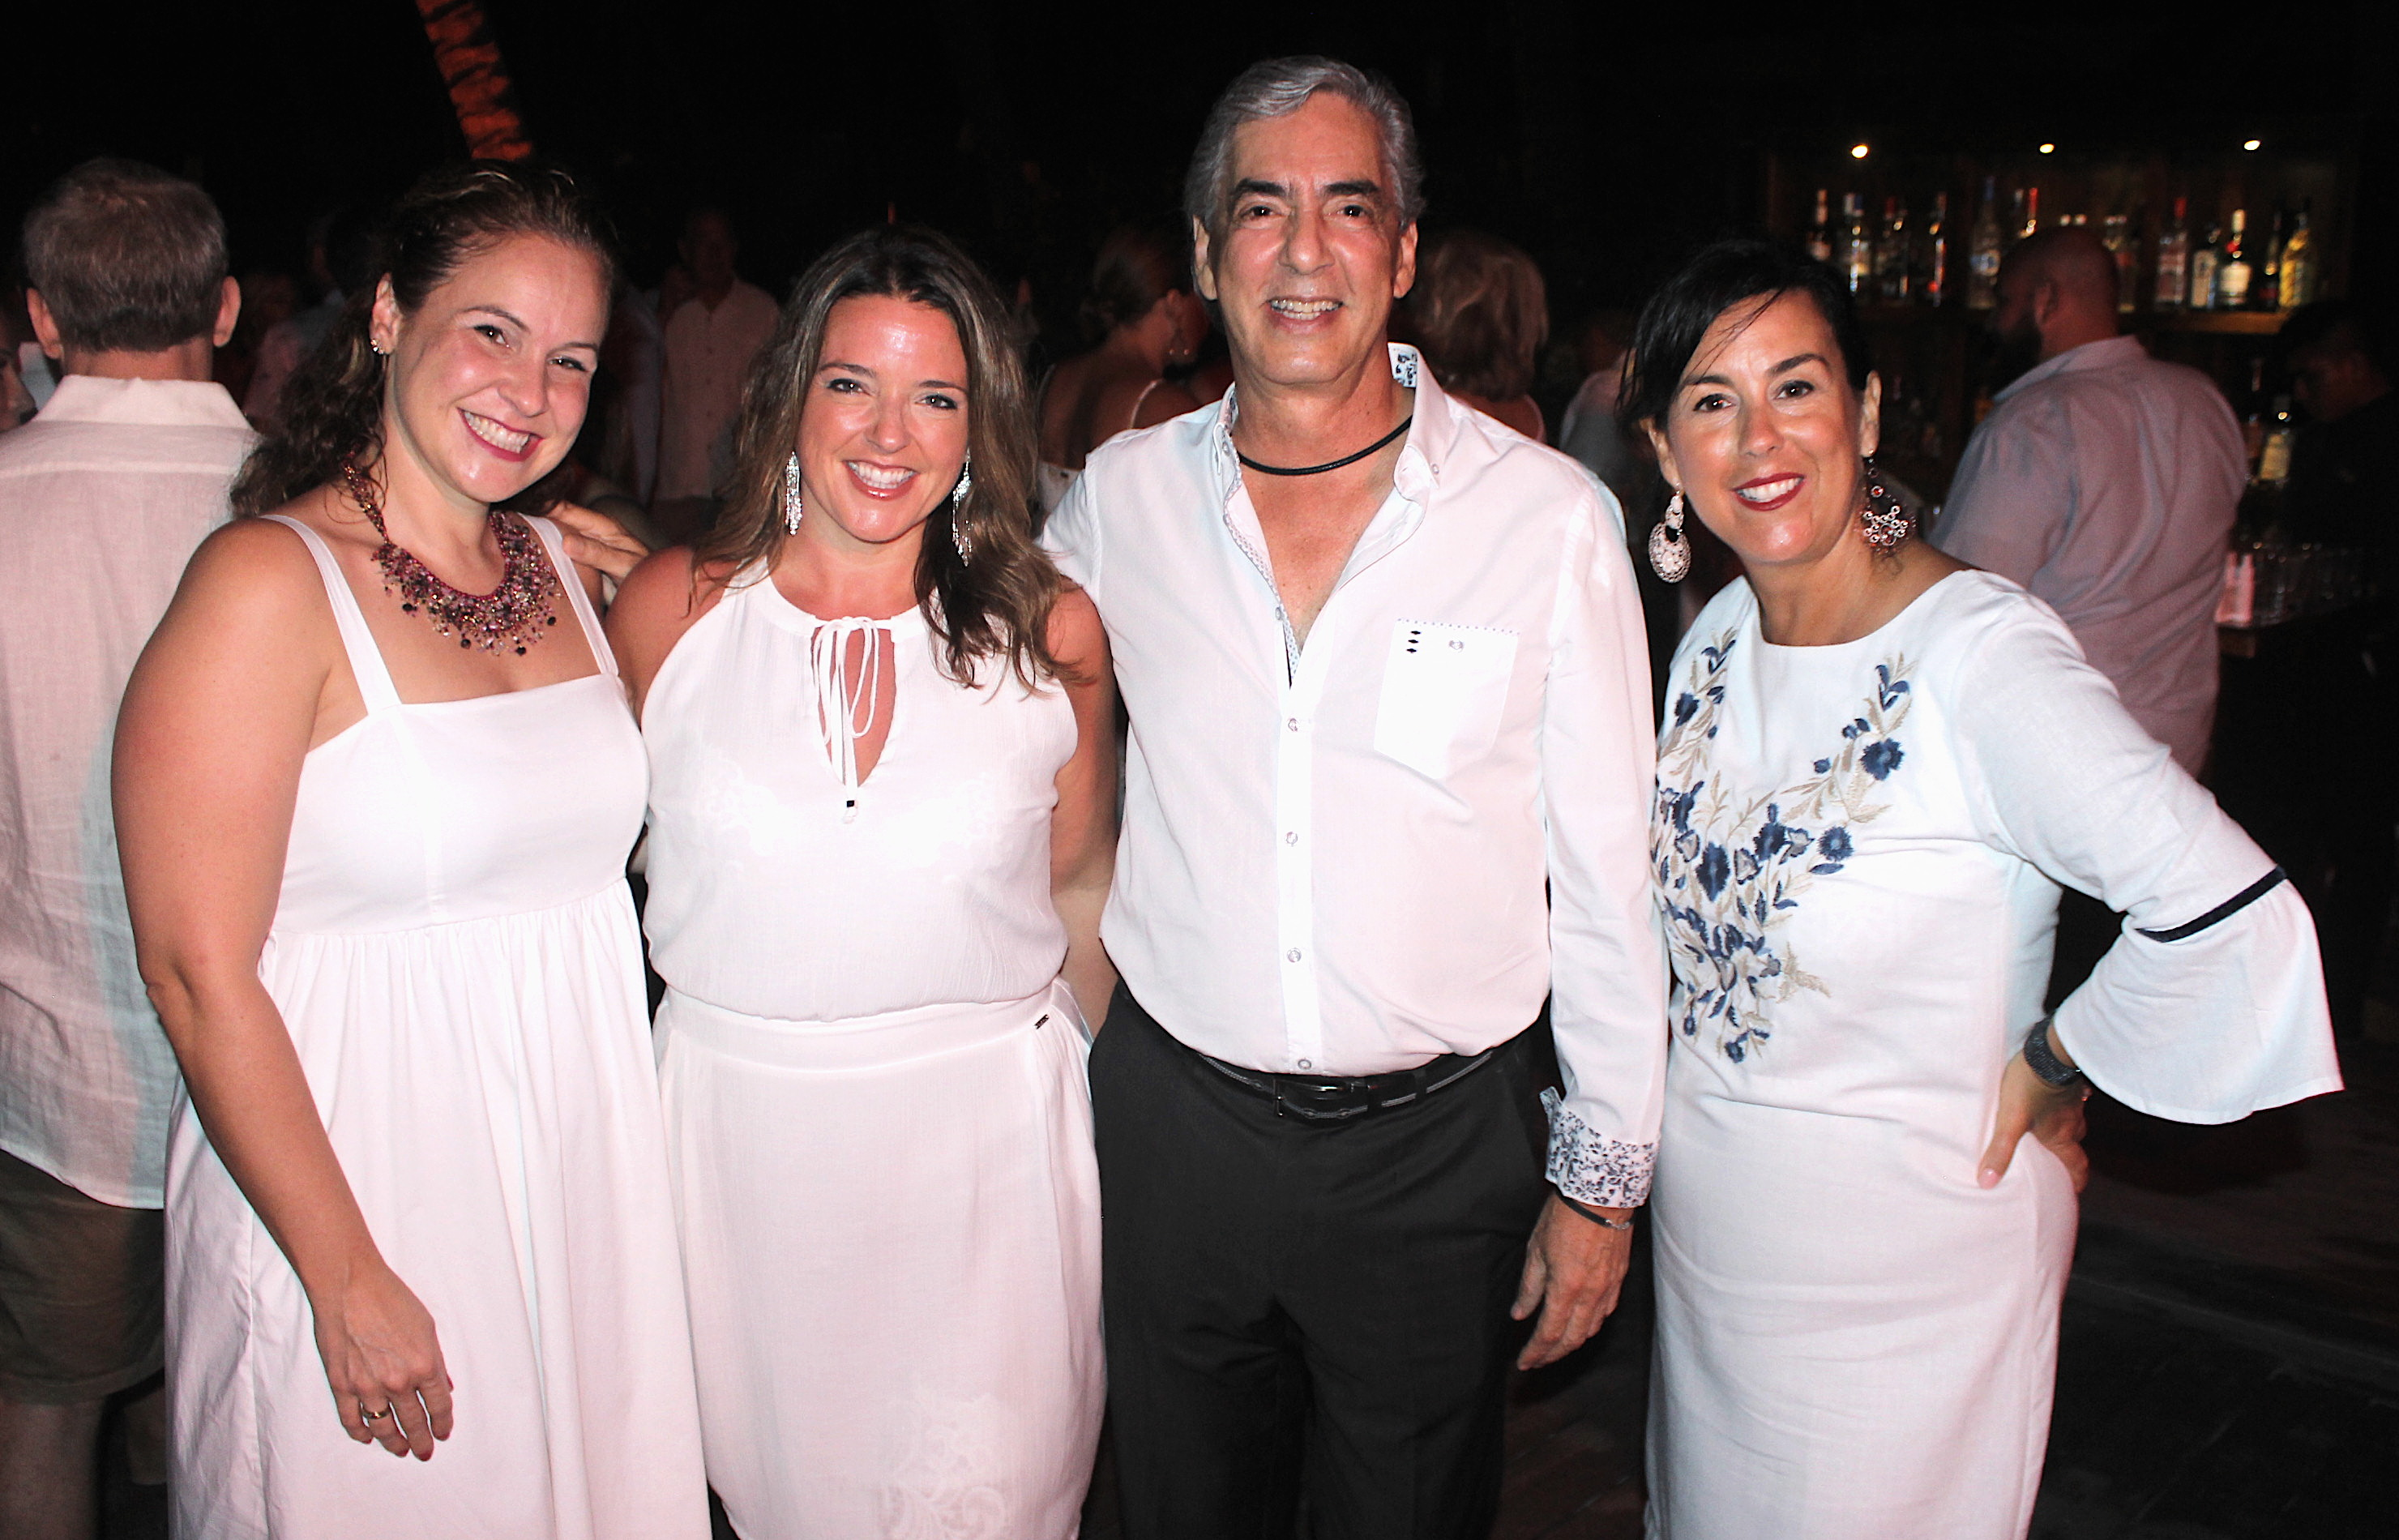 From left: Caroline Boily, groups and incentives manager, Voyages Laurier du Vallon; Evelyne Mayrand, co-owner, Club Voyages Orientation; Juan Vela Ruiz, vice-president, Velas Resorts; Sophie Raymond, regional sales manager, Canada, Velas Resorts.